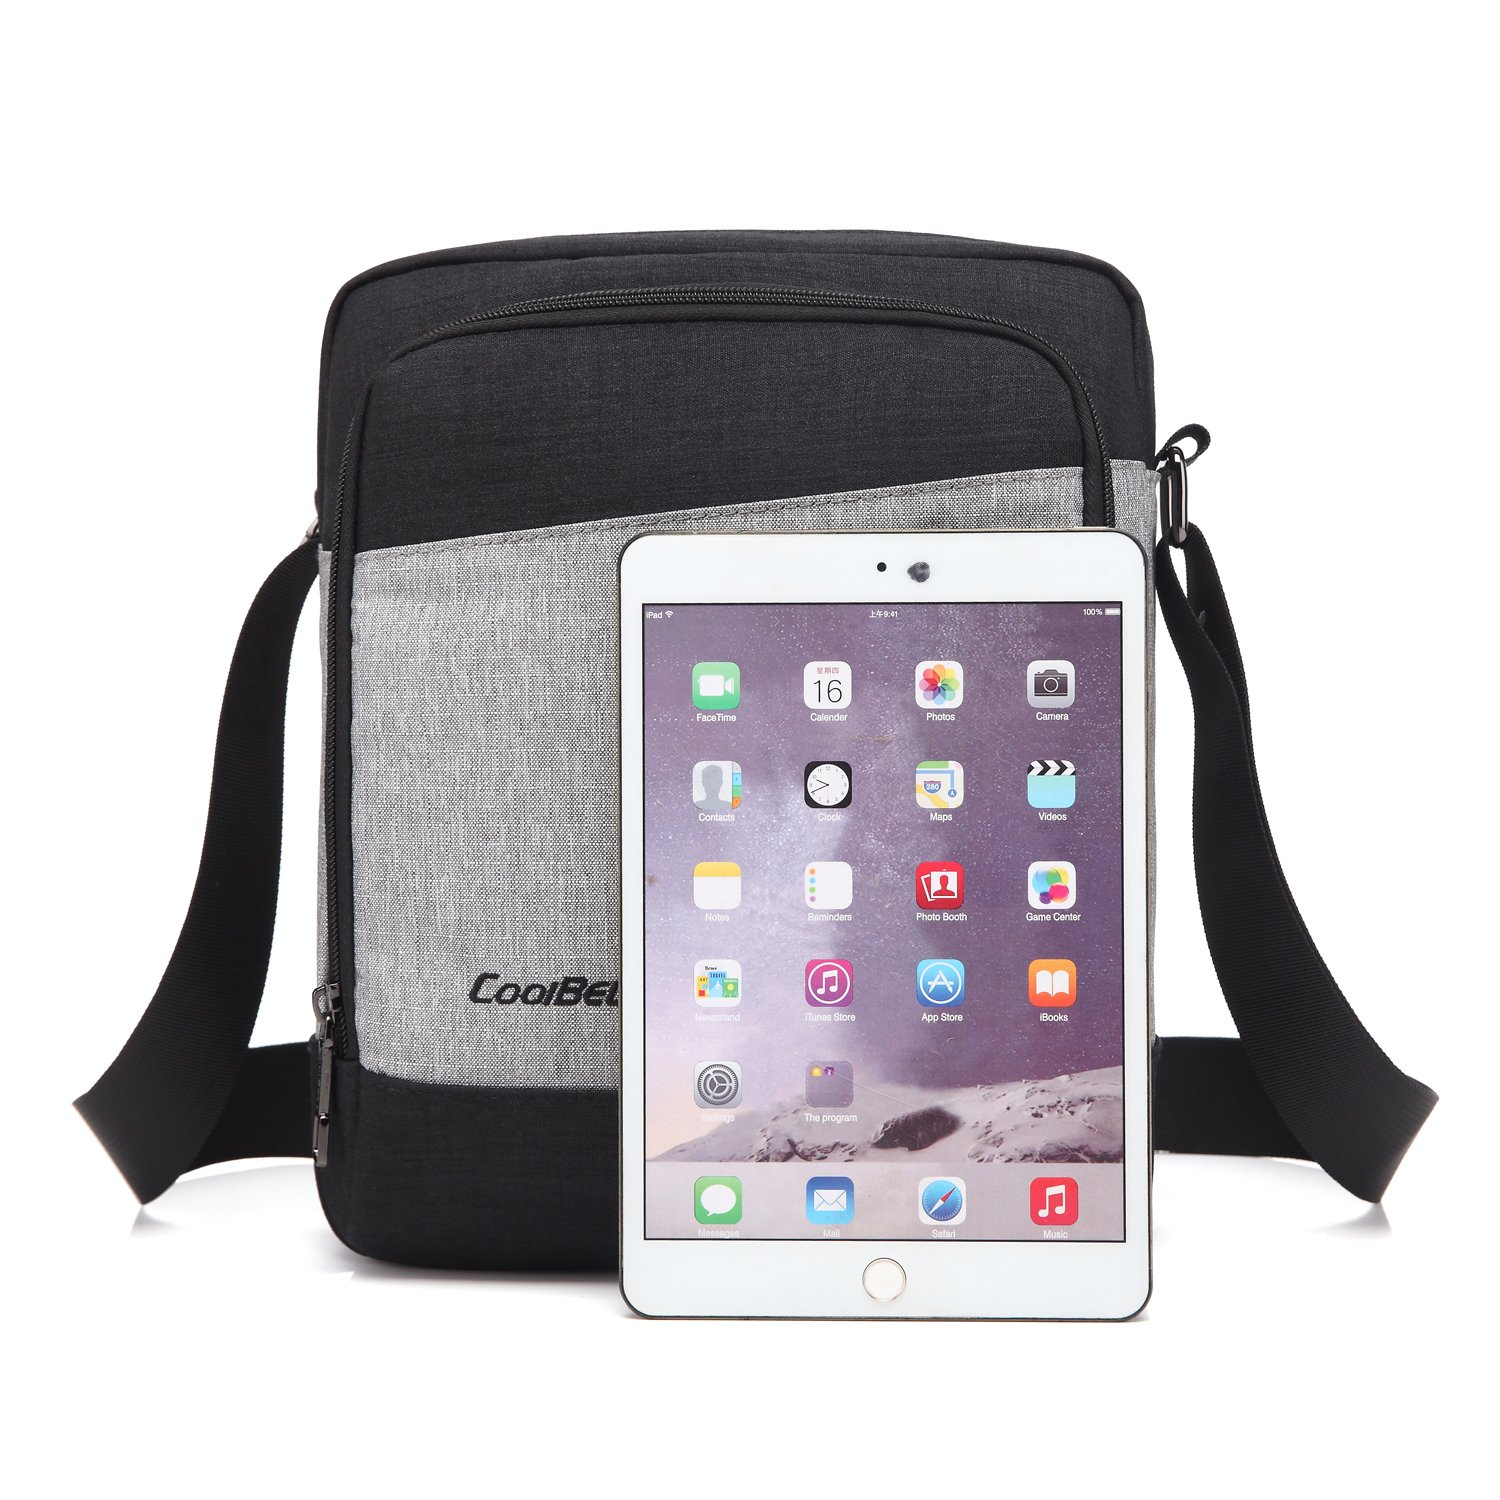 CoolBELL Shoulder bag Crossbody Pouch Satchel Bag Student Messenger Bag Fits 10.6 Inches Tablet//iPad